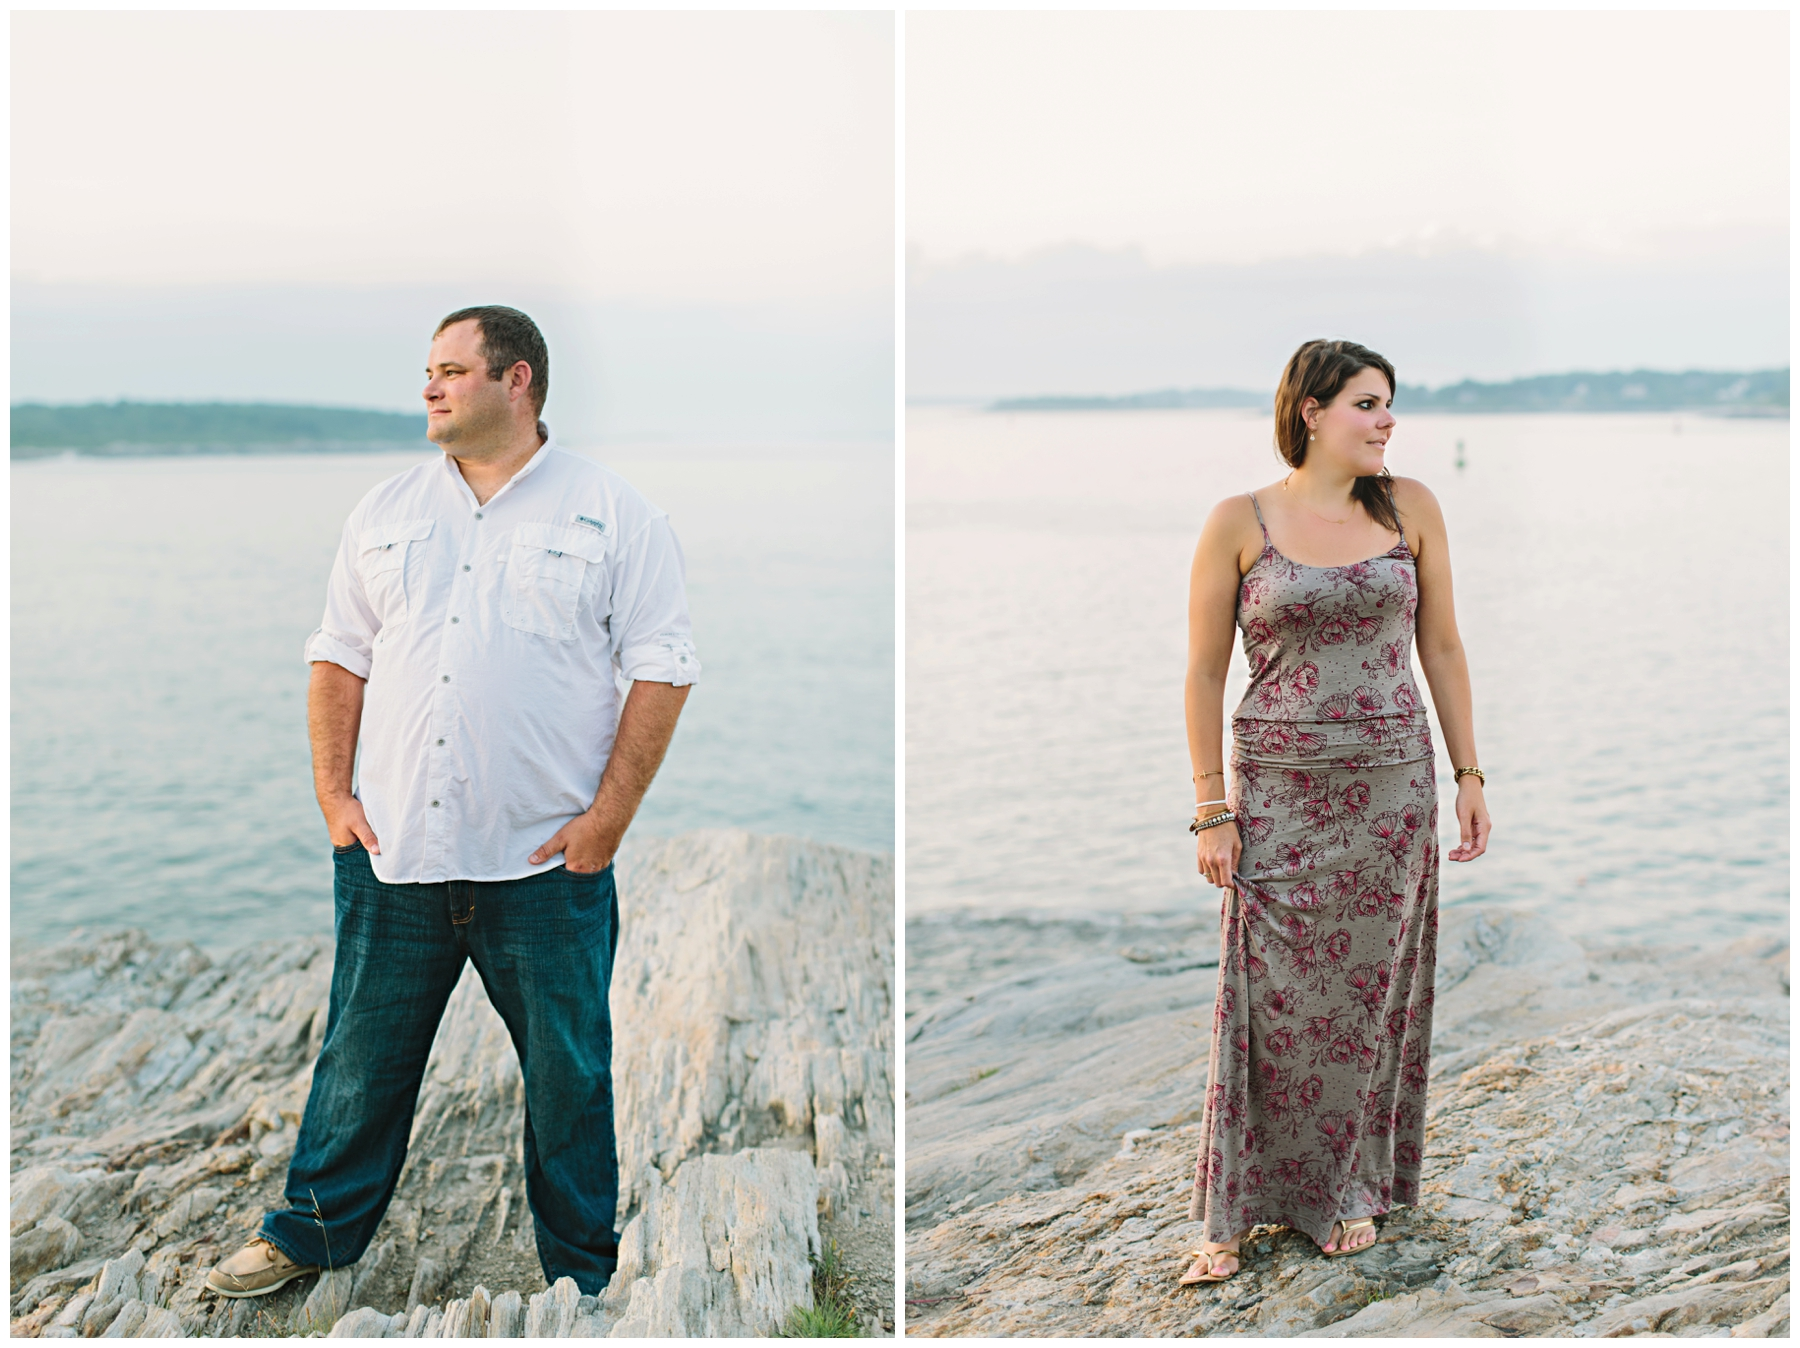 Maine_Photographer_Engagements_FortWilliams_PortlandHeadLight_lighthouse_coastal_seaside-021